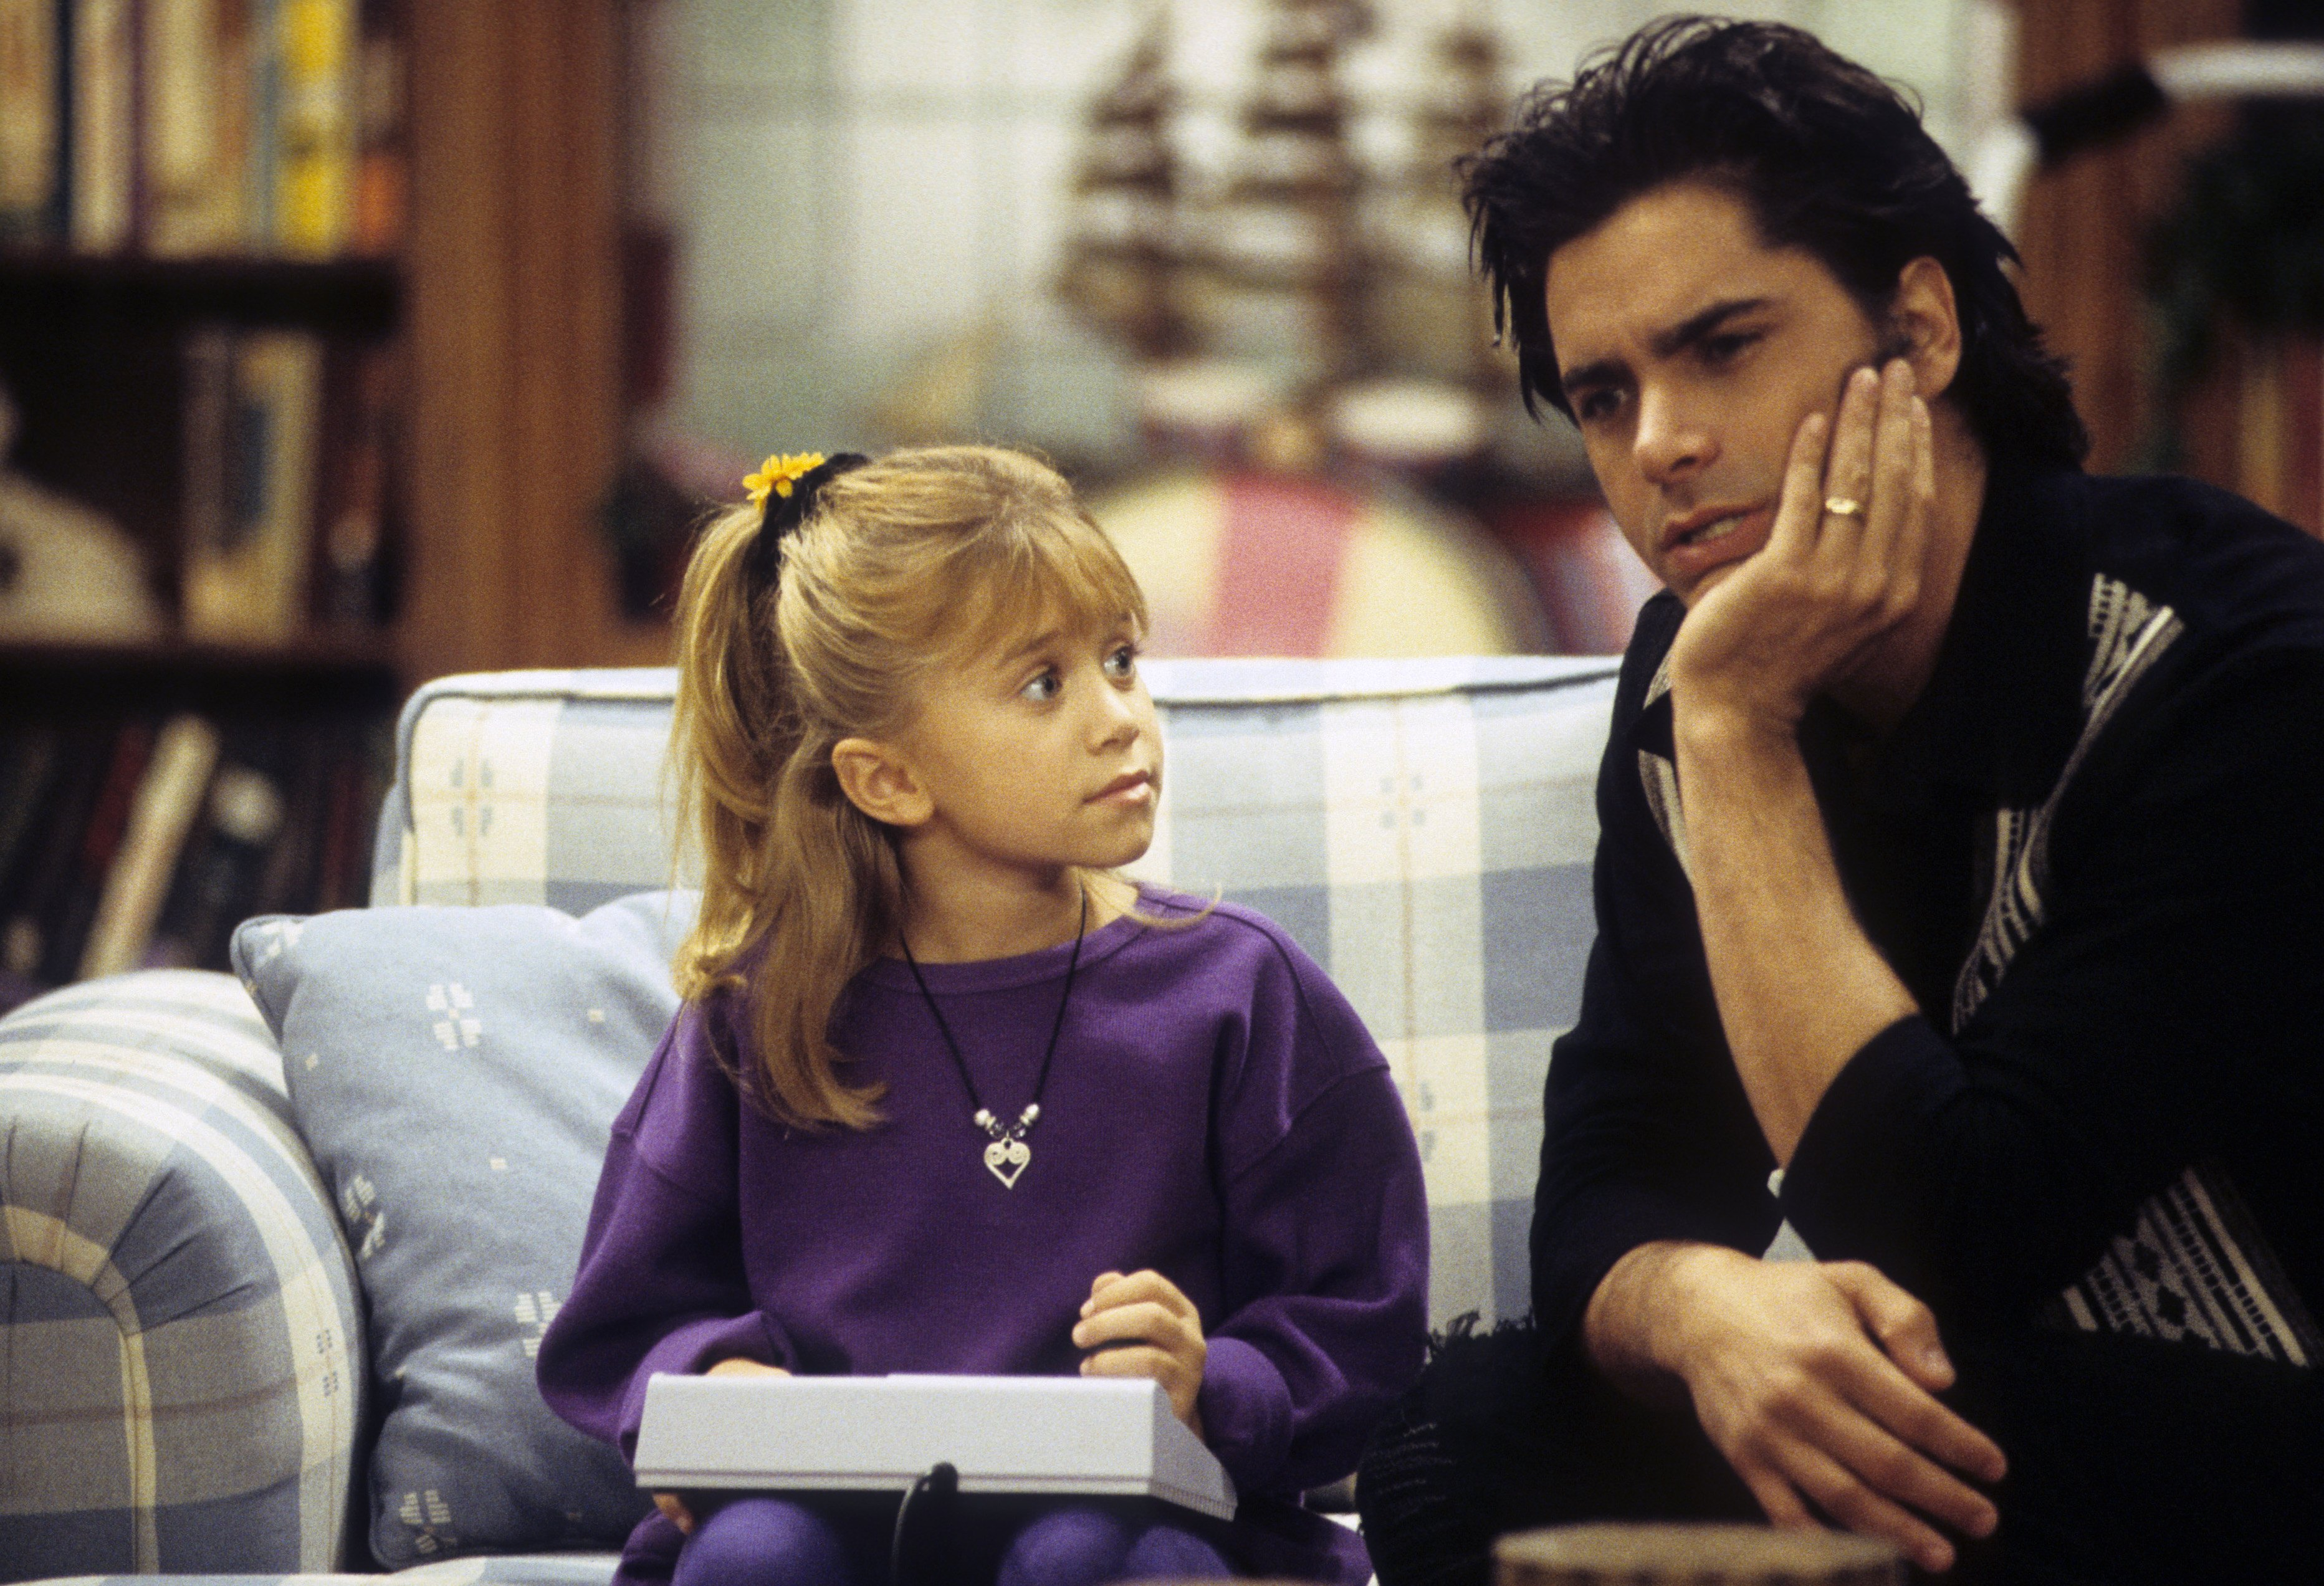 FULL HOUSE Photo by ABC Photo Archives/ABC via Getty Images